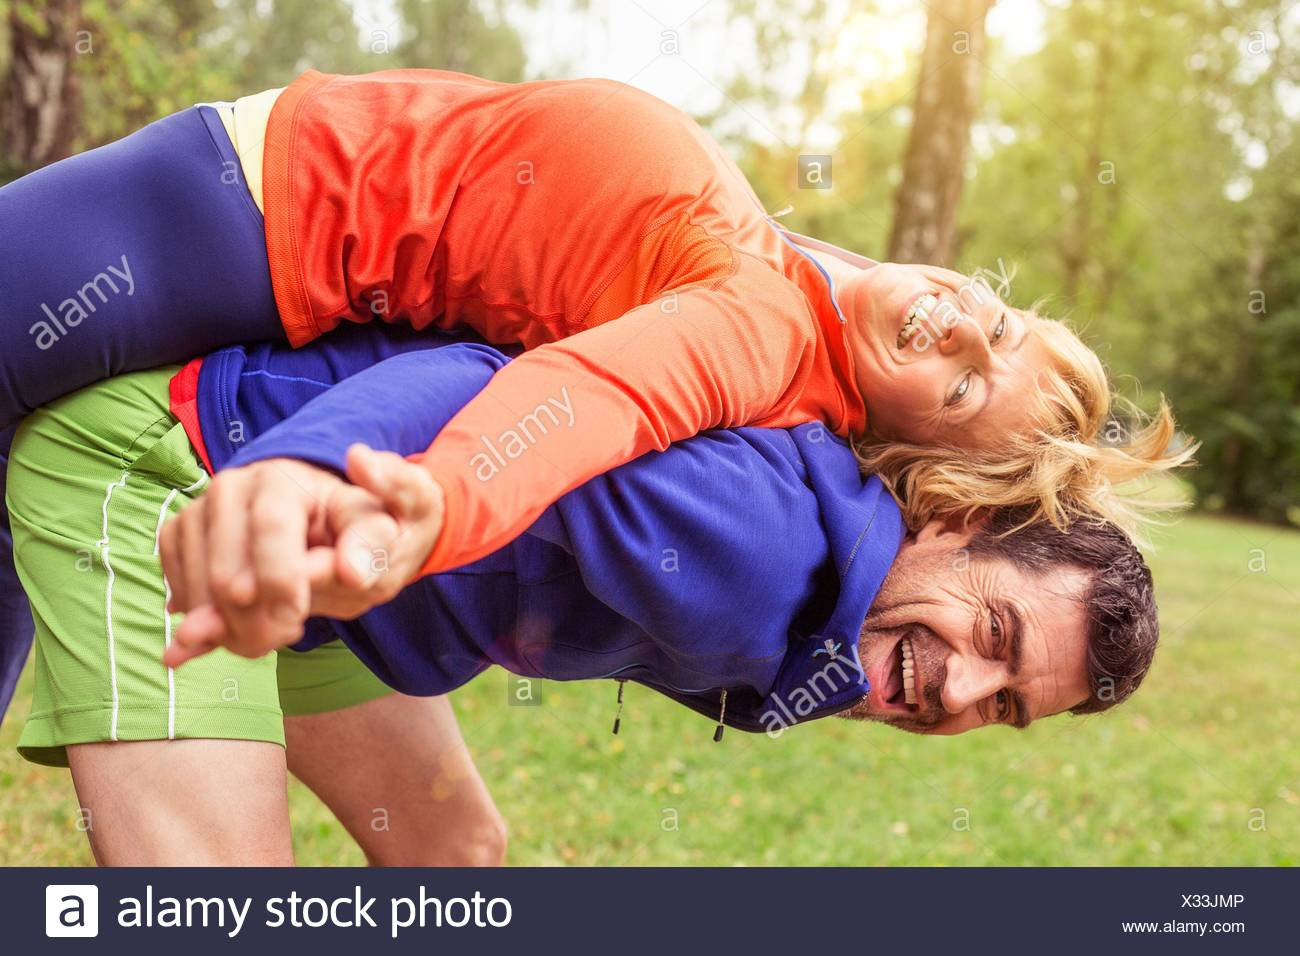 Couple exercising, man stretching woman on back, outdoors, laughing - Stock Image